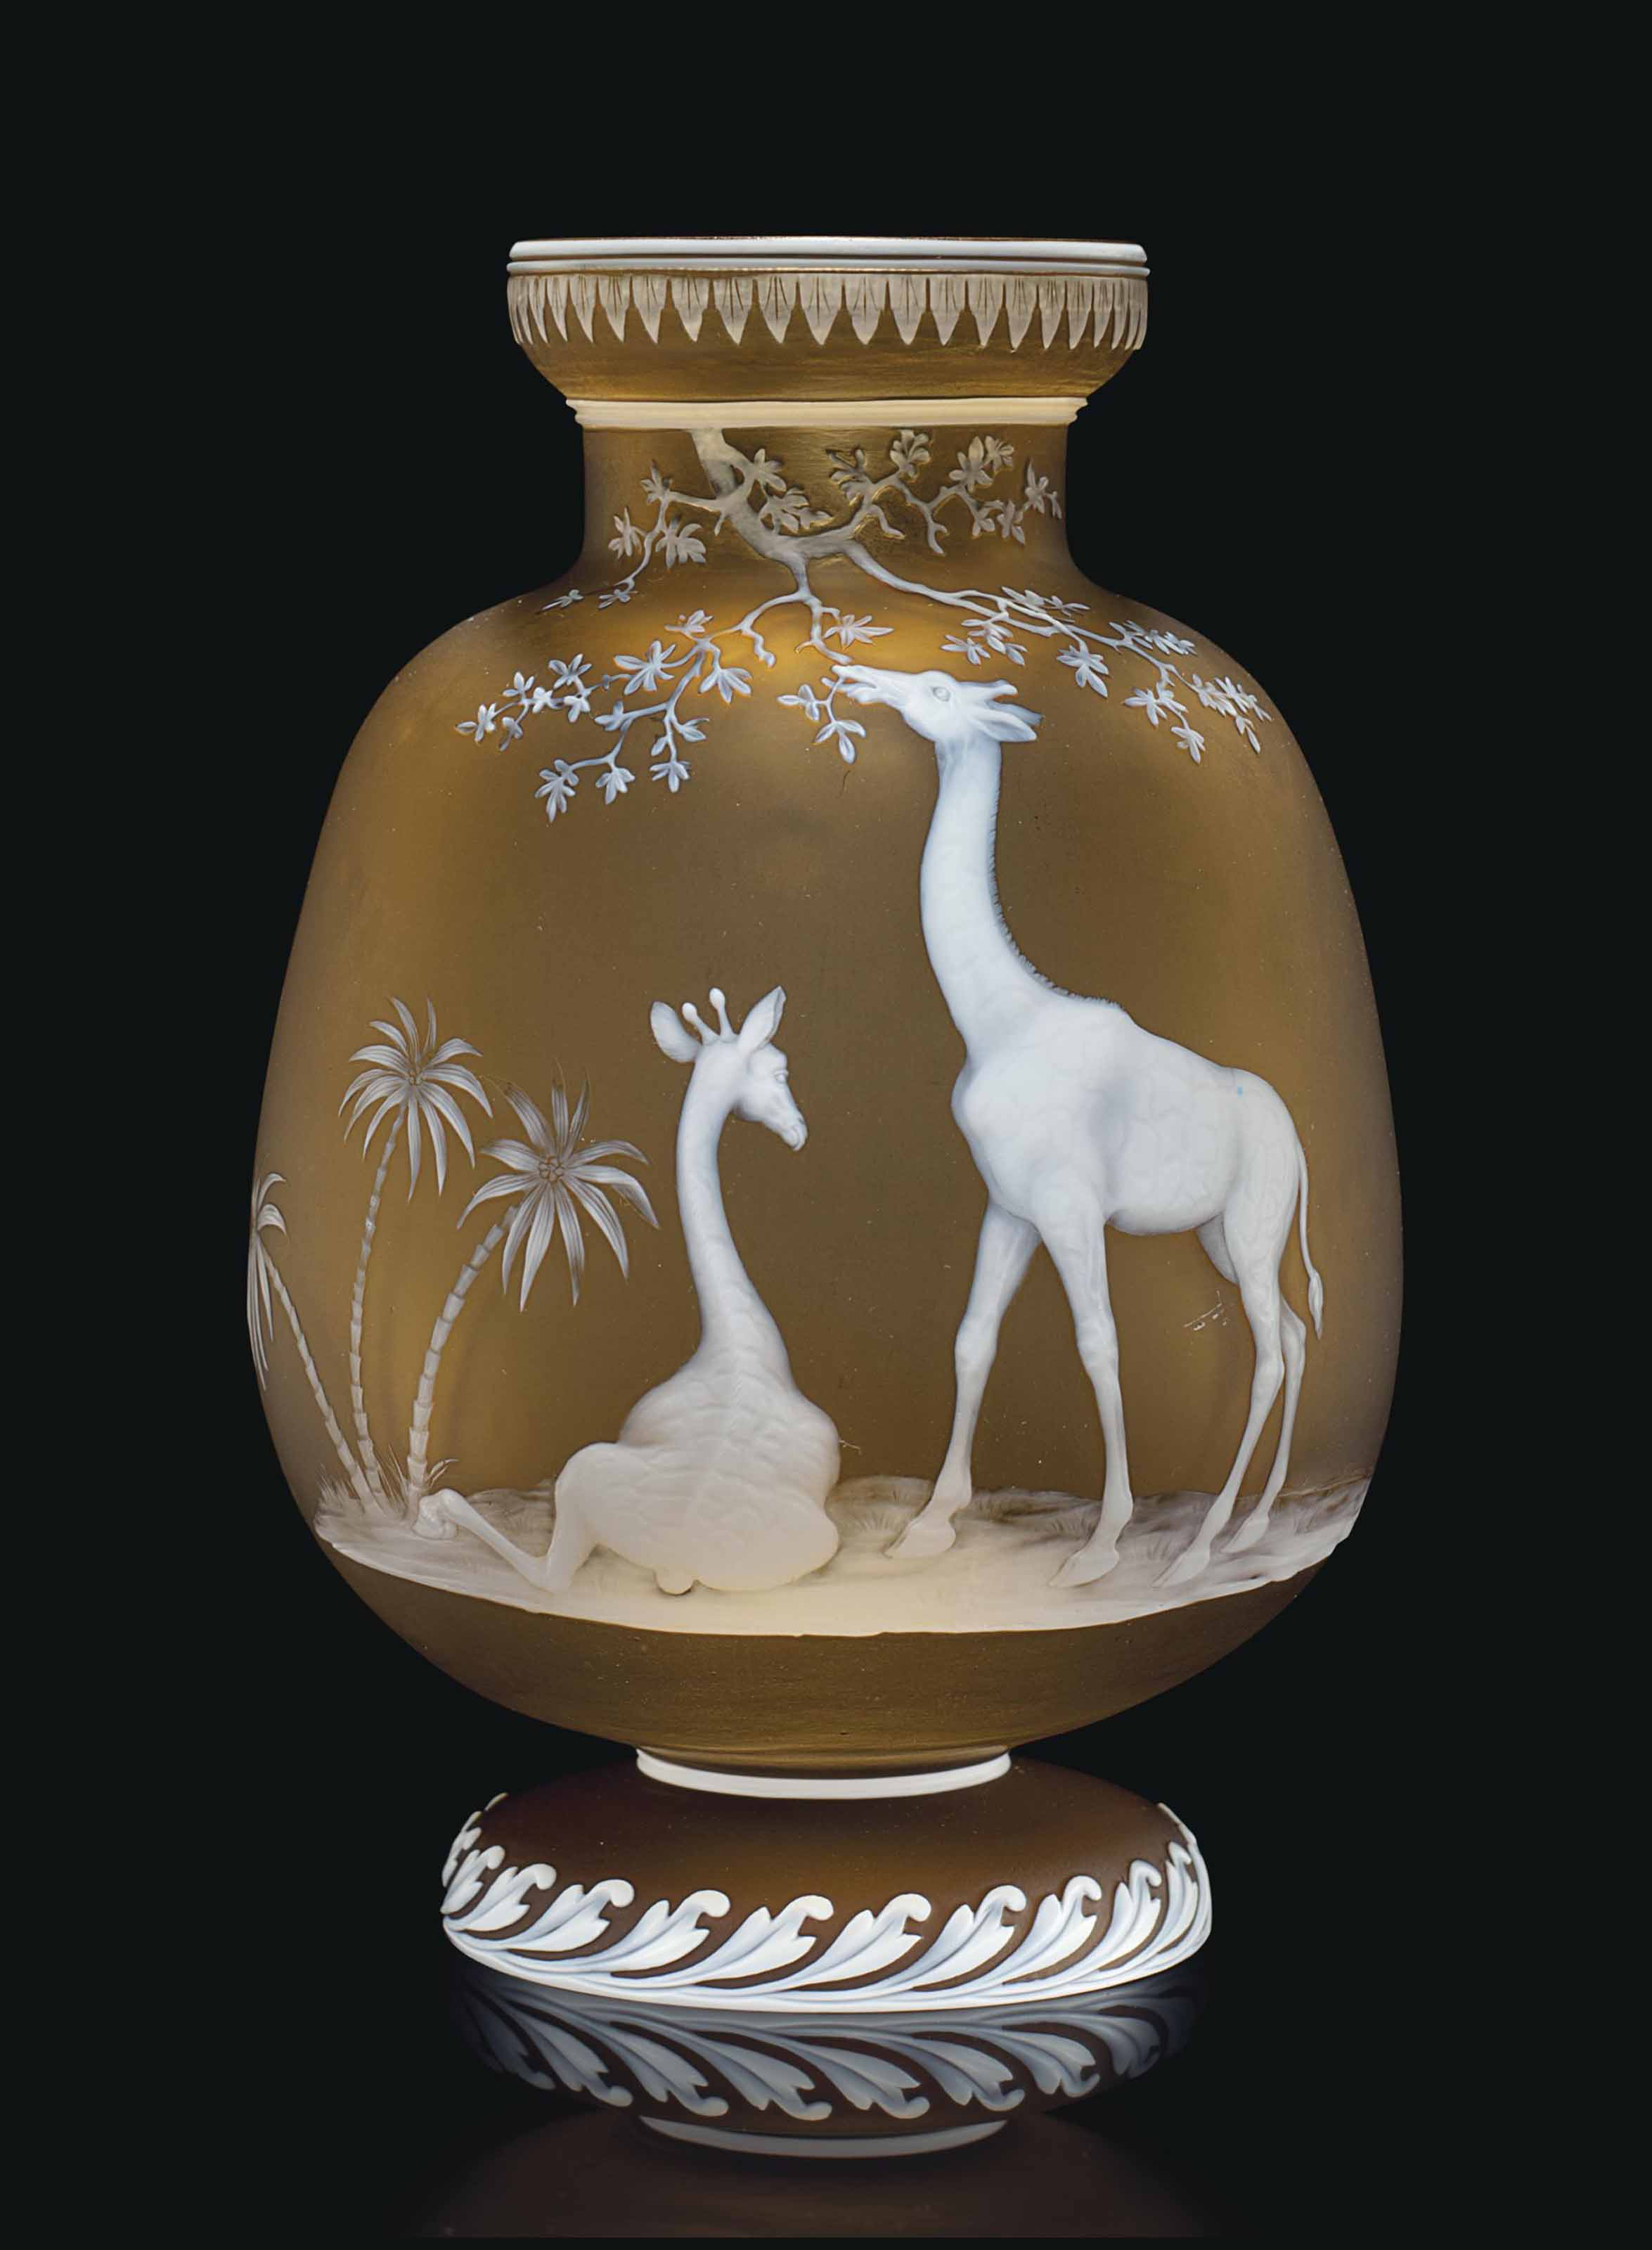 A THOMAS WEBB & SONS CAMEO GLASS VASE OF GIRAFFES